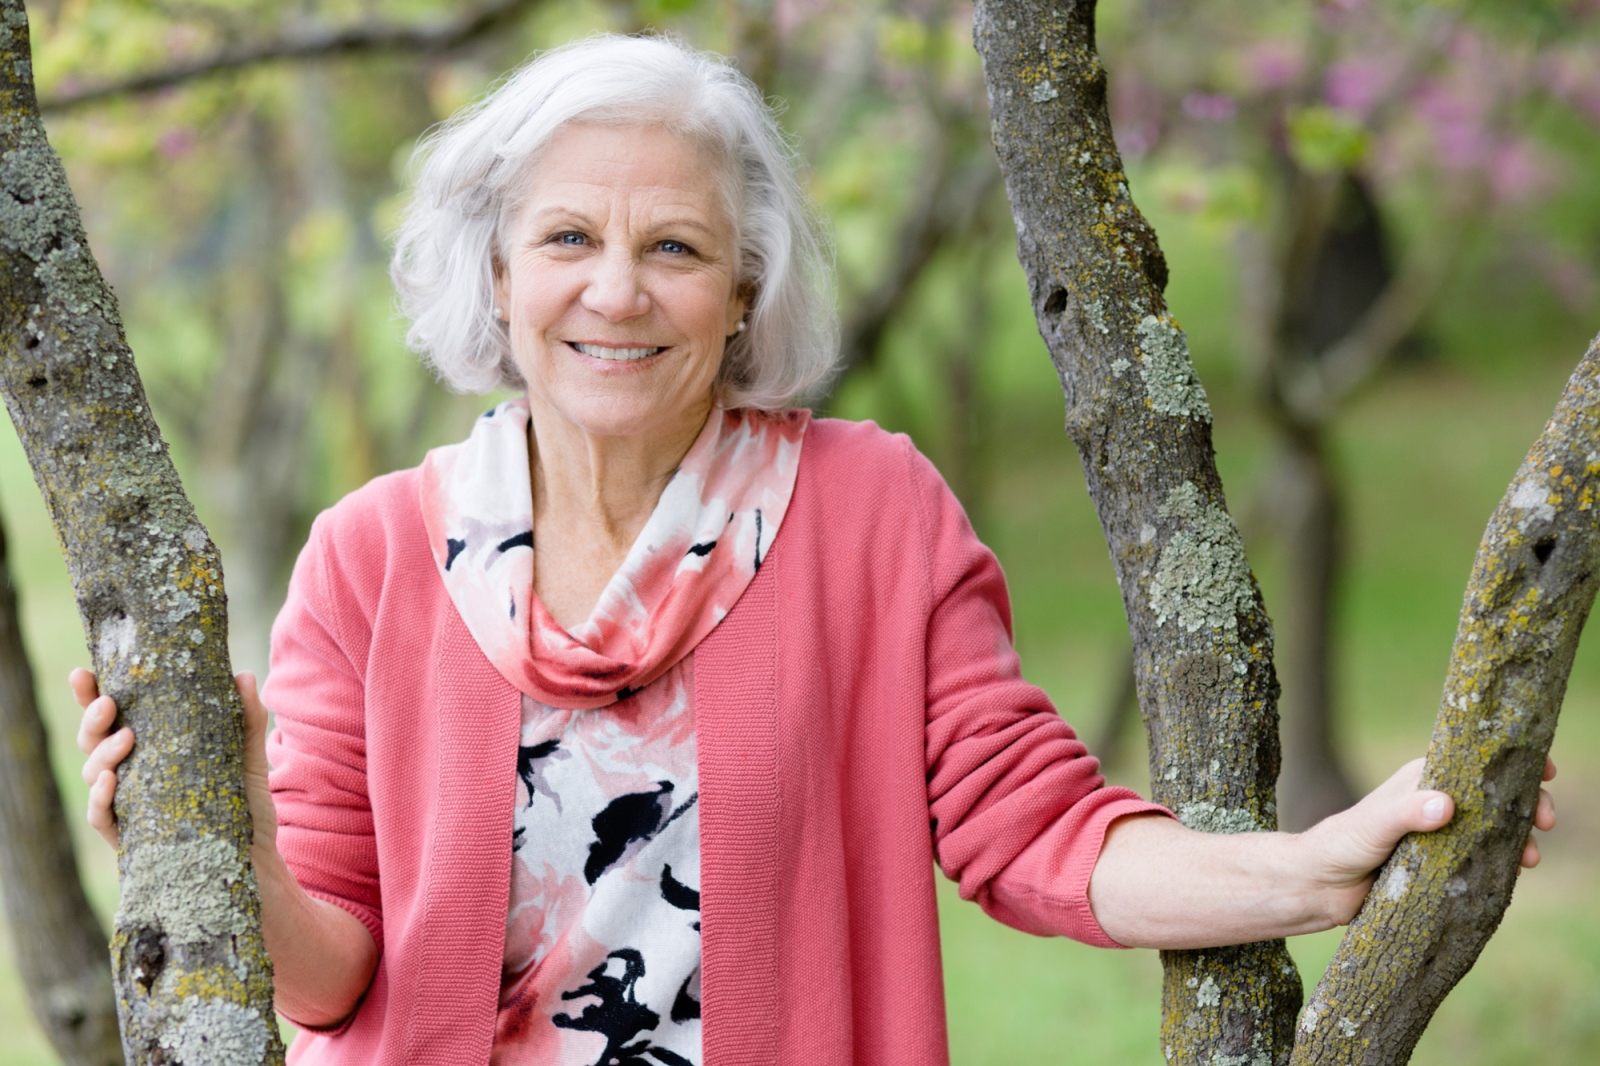 How to Avoid Legal Issues When Hiring a Senior Caregiver